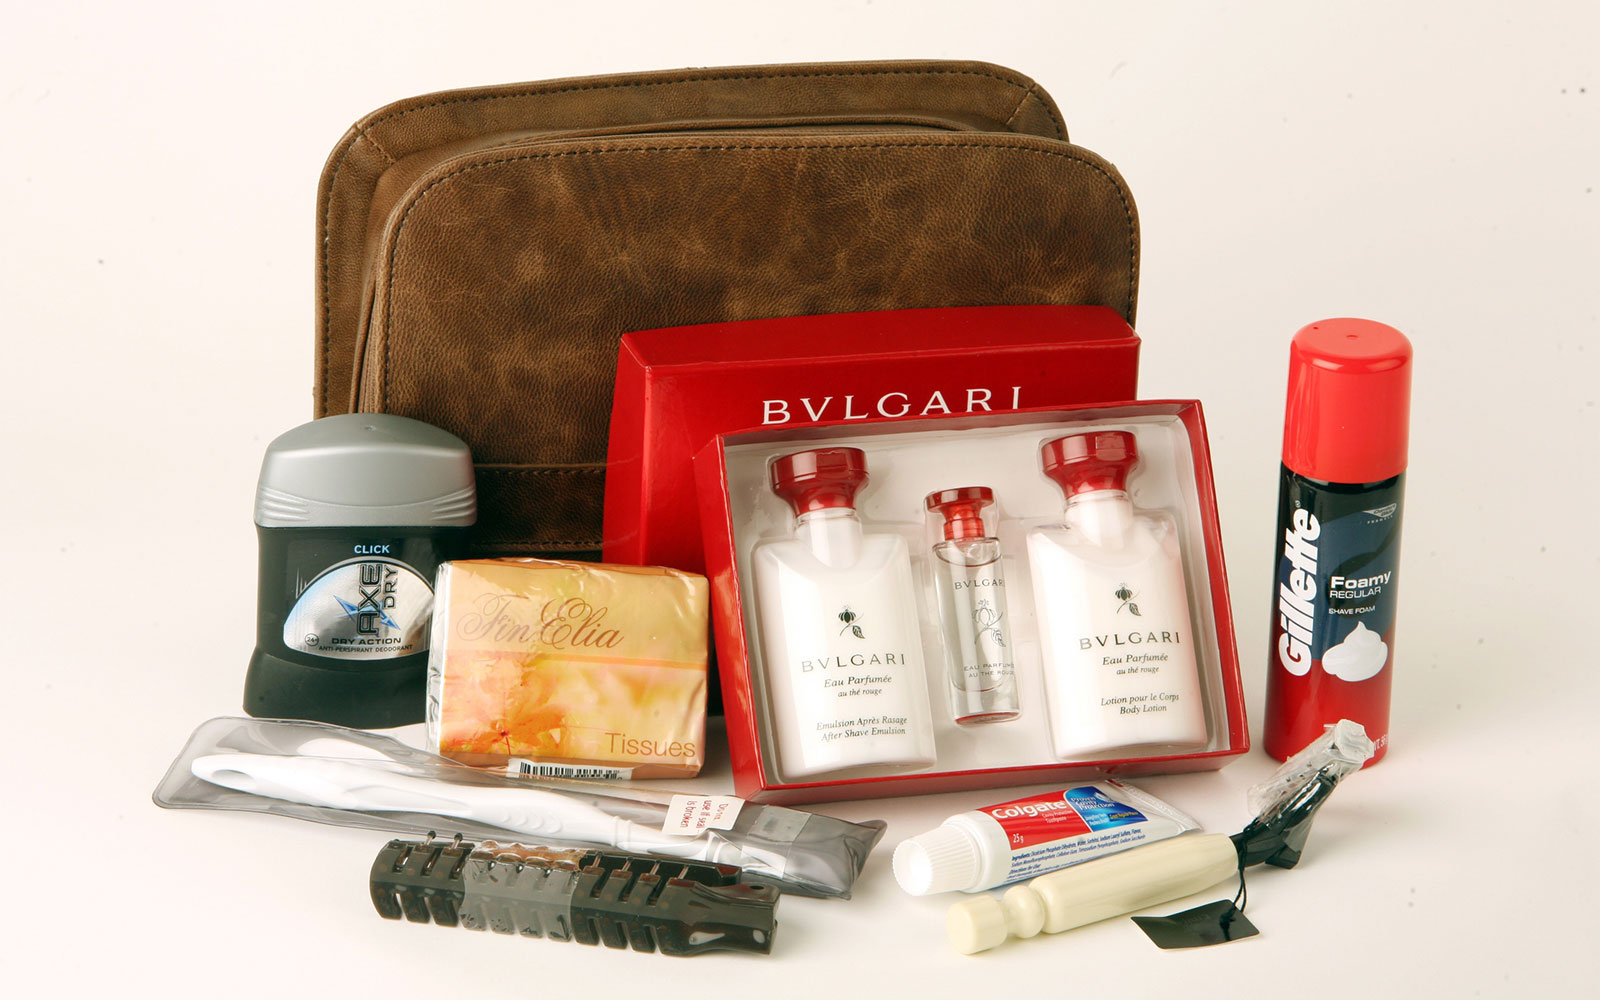 Coolest Airline Amenity Kits: Emirates - First Class Bulgari Amenity Kits